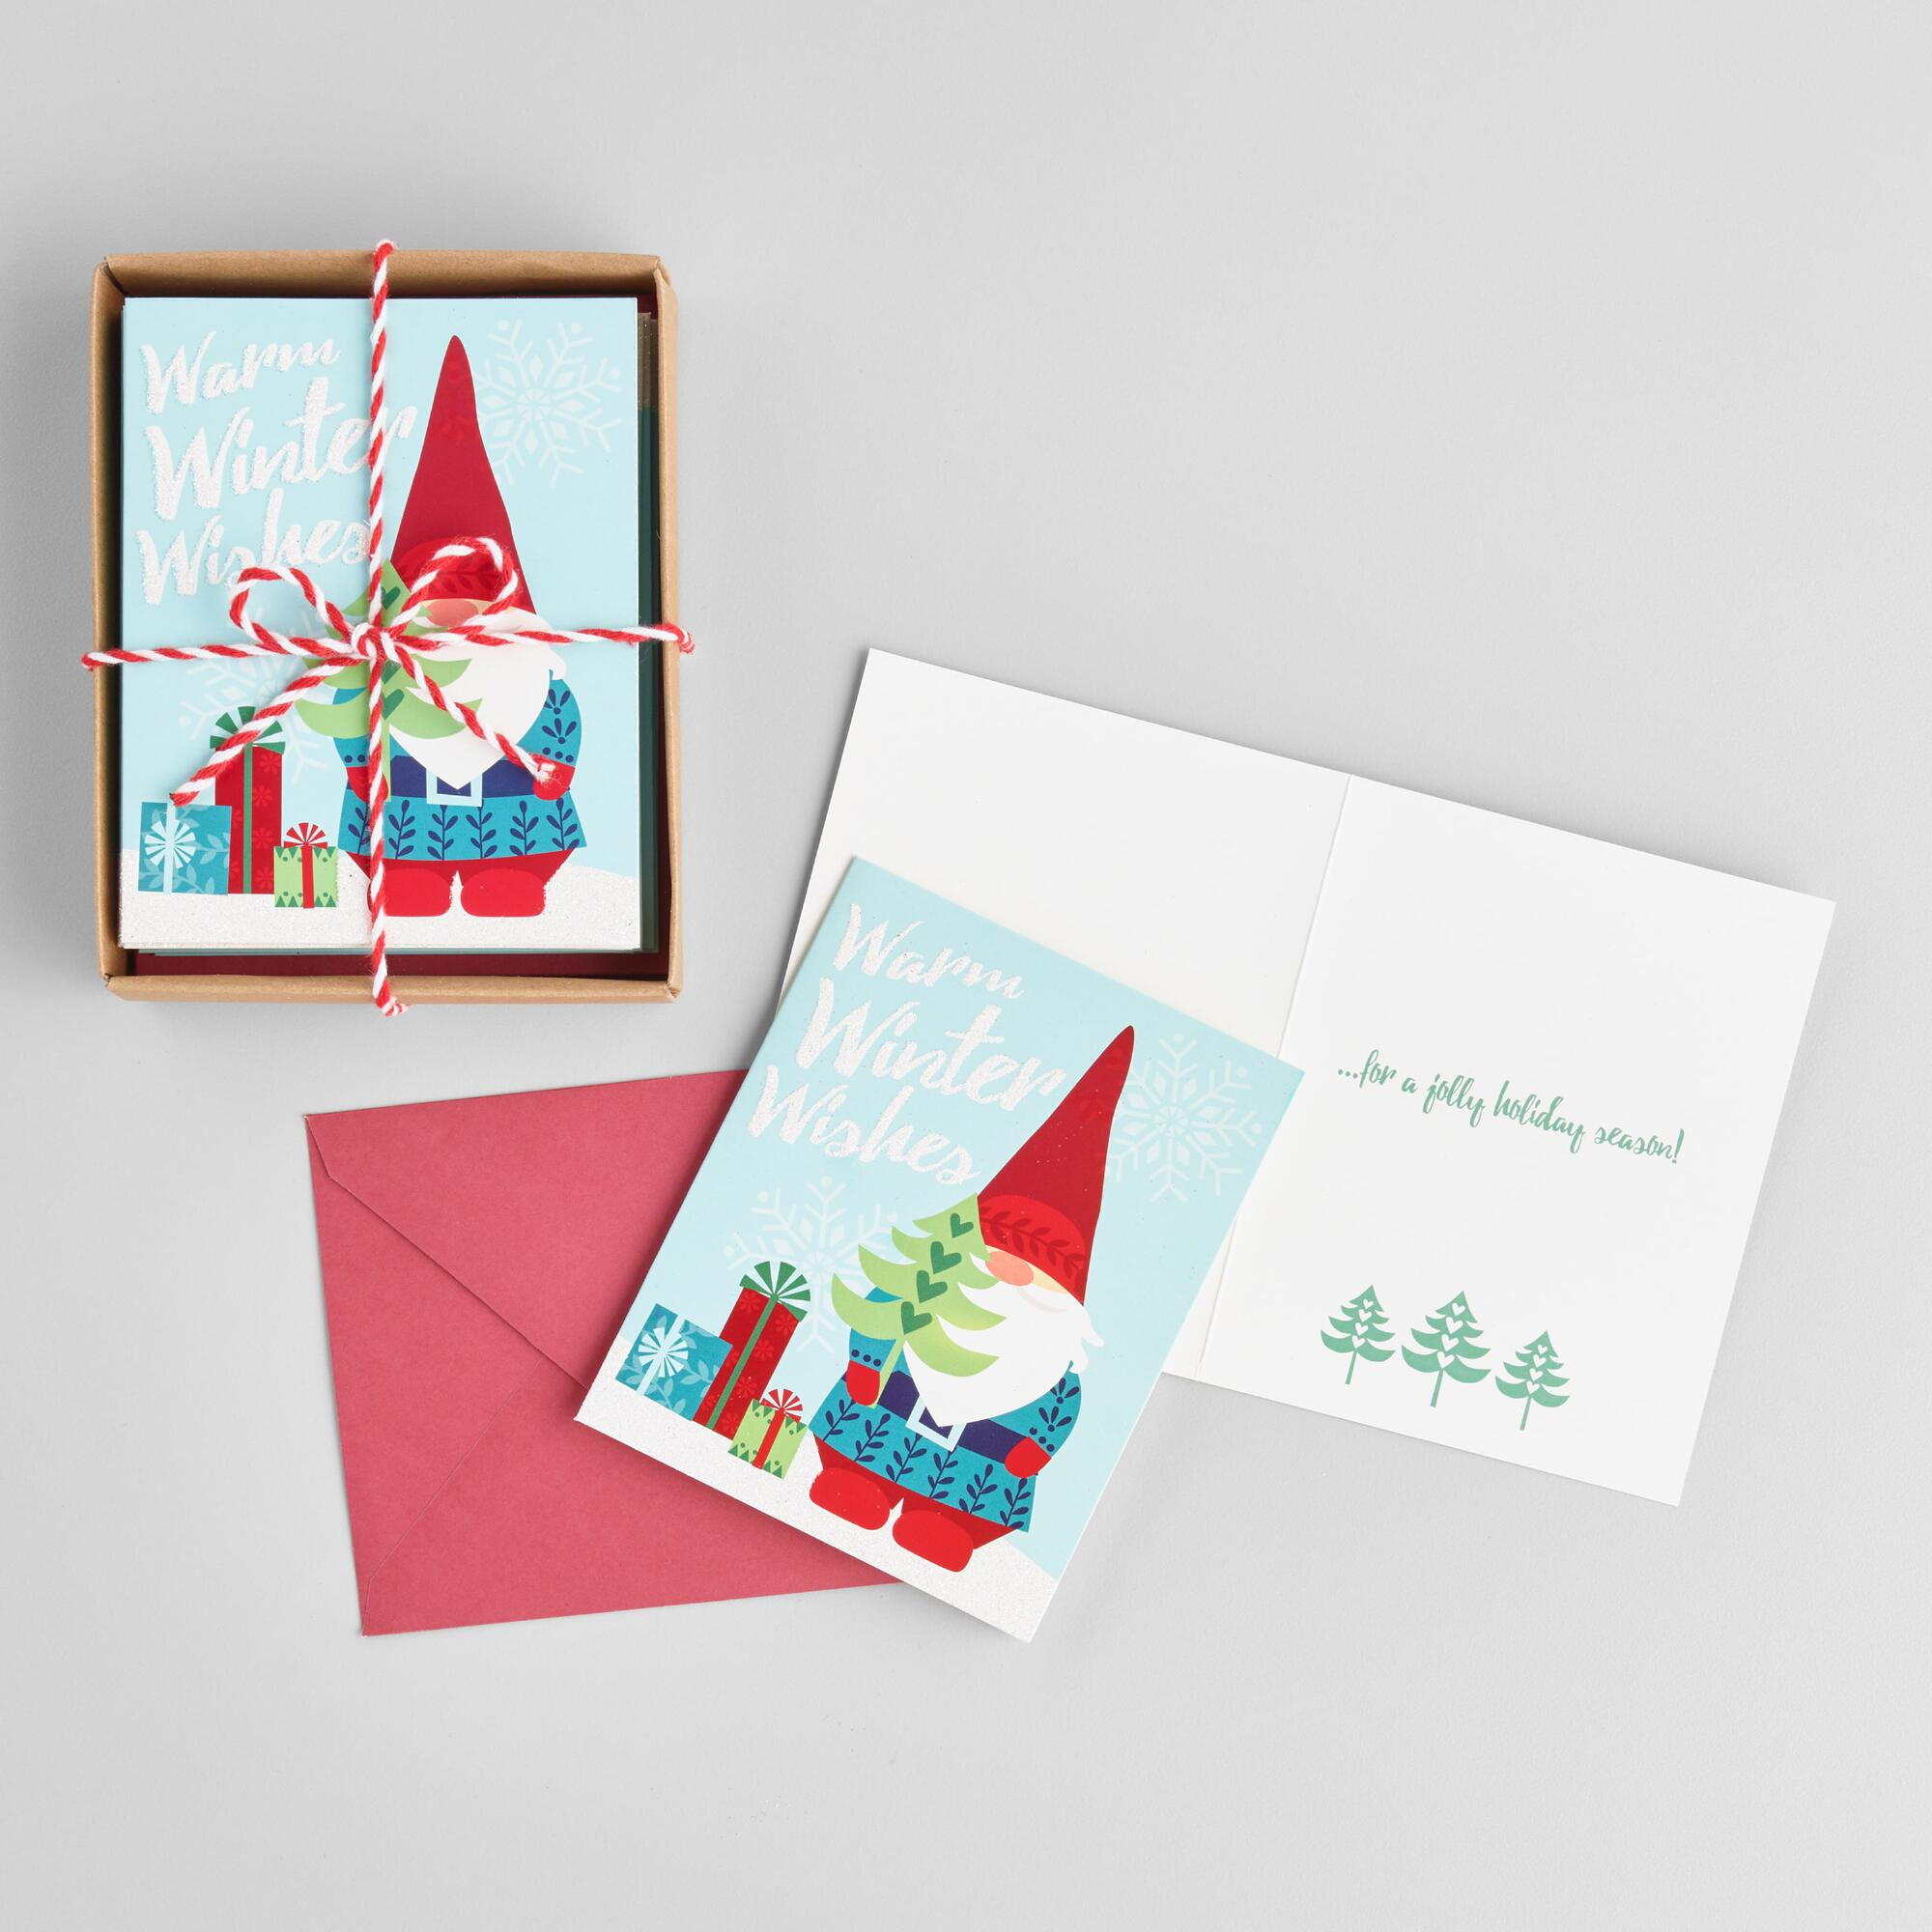 Boxed Christmas Cards.Gnome Warm Winter Wishes Boxed Holiday Cards Set Of 15 By